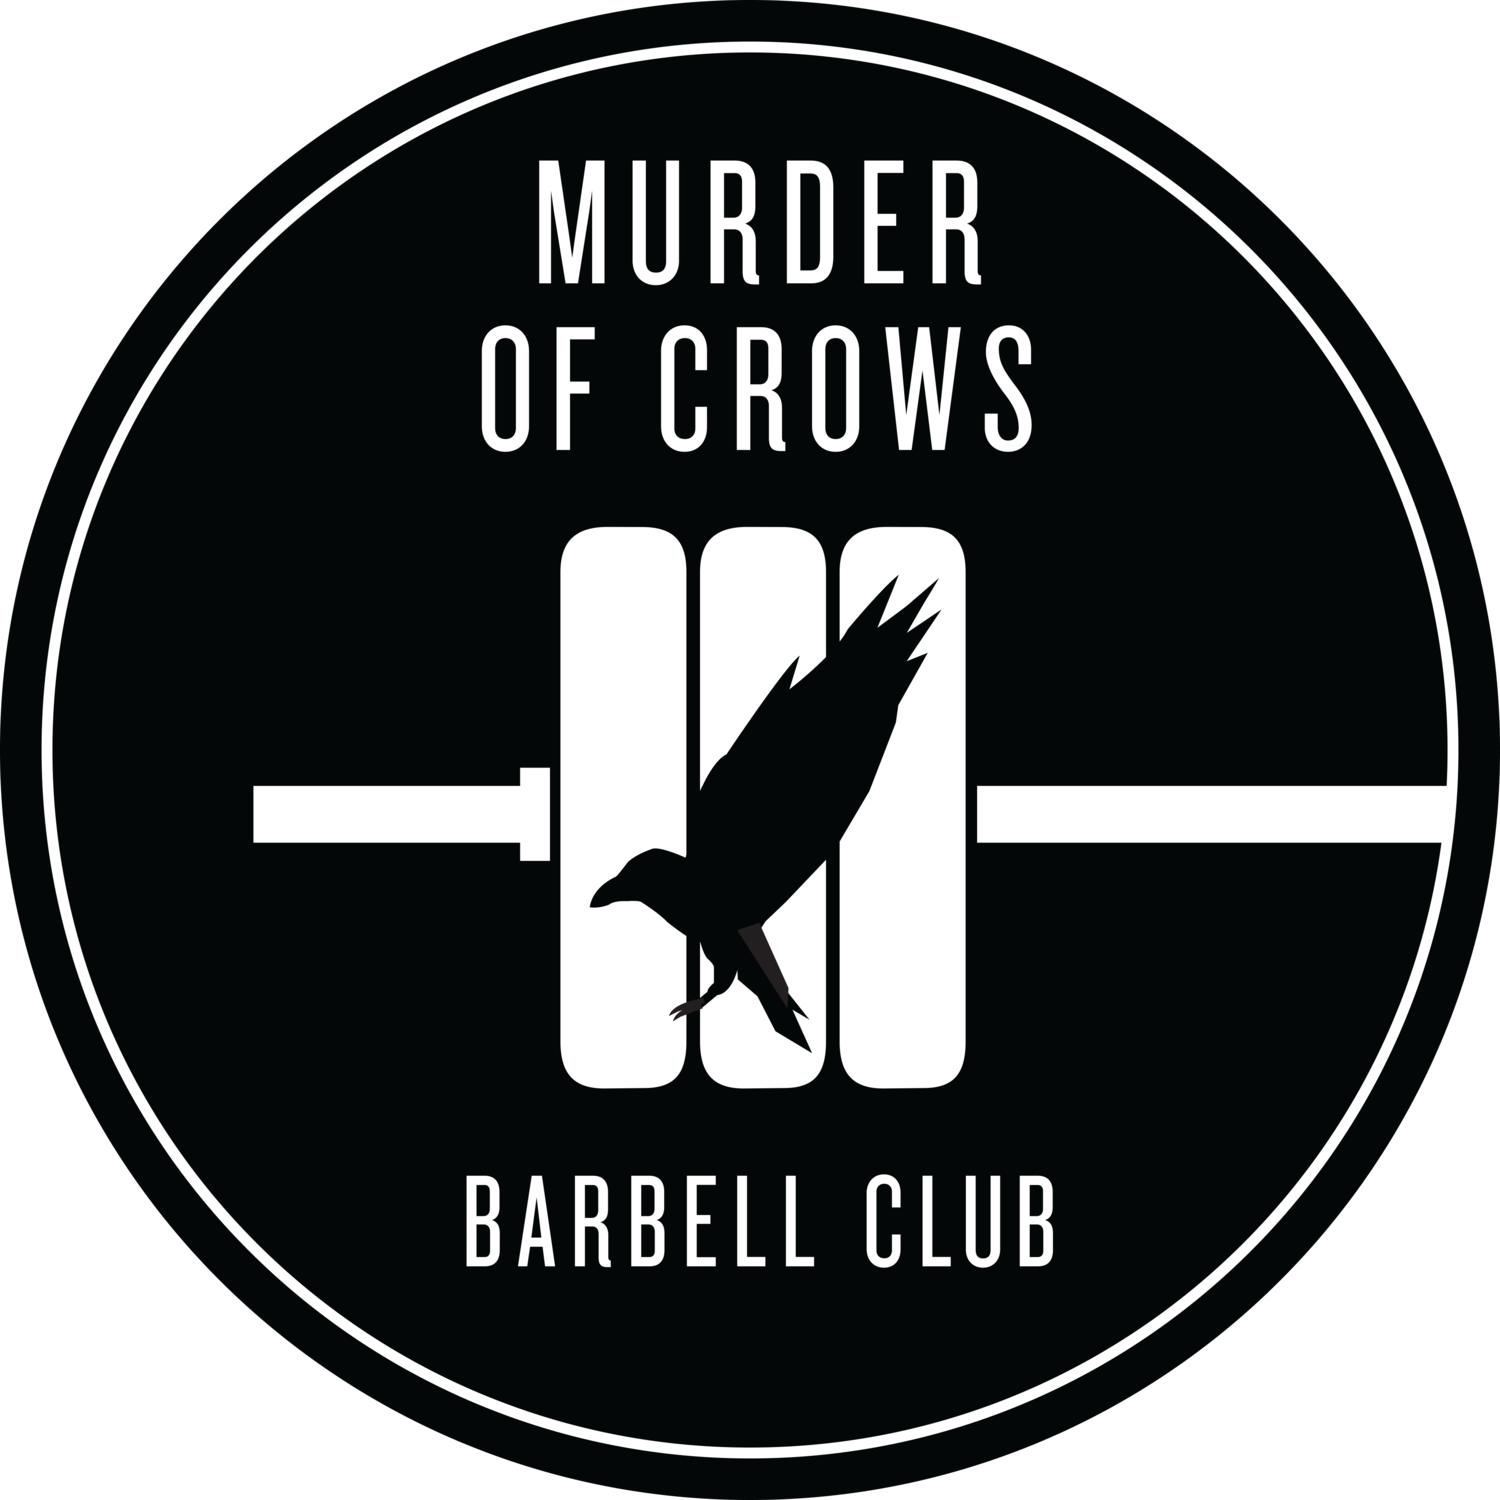 Murder of Crows Barbell Club | Serving NYC as the premier Powerlifting & Olympic Lifting Facility.